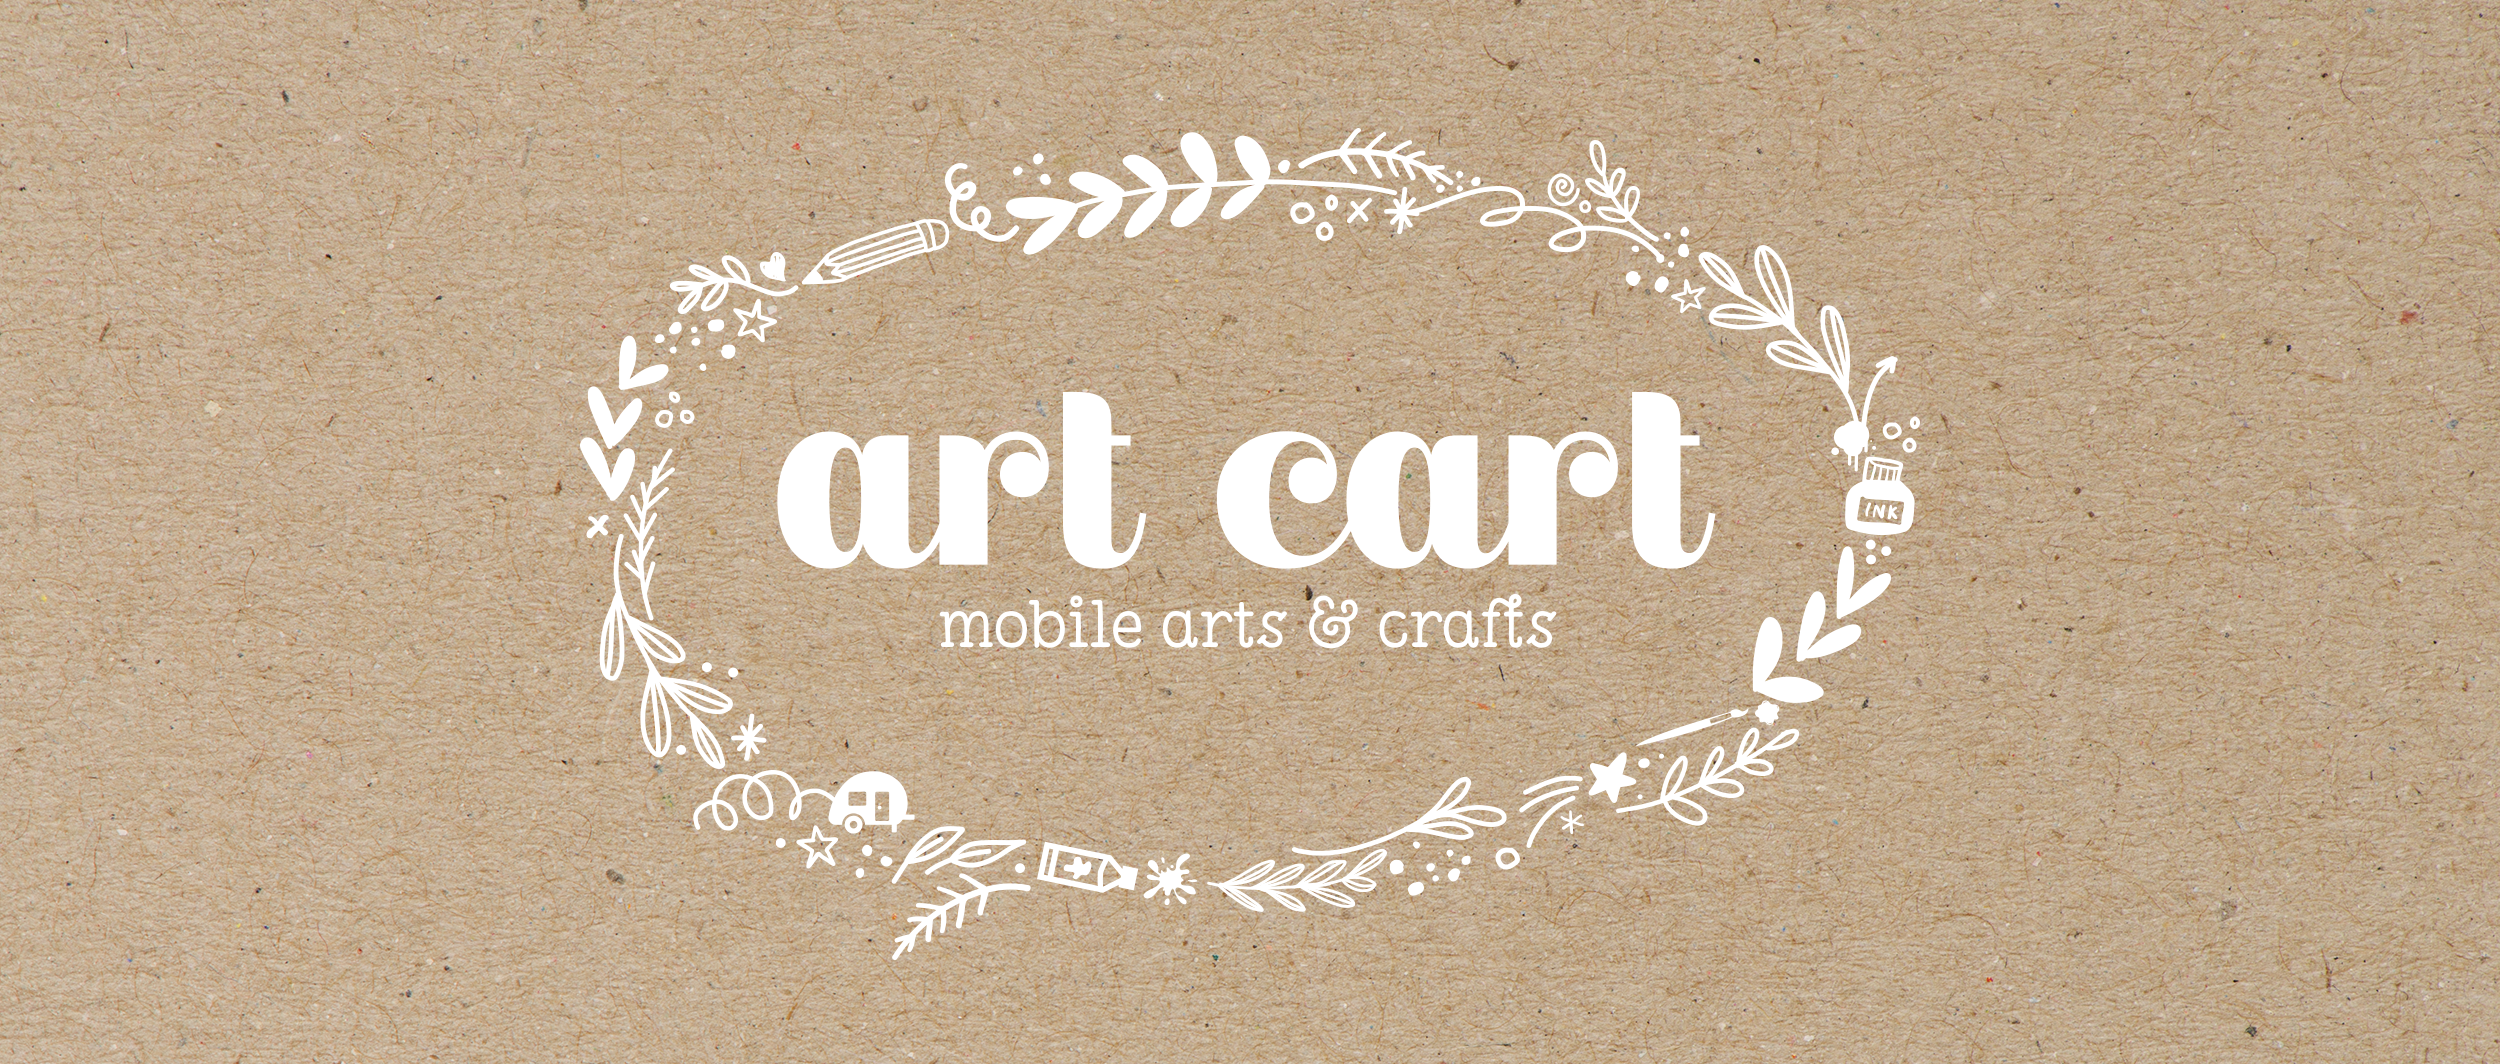 Art Cart logo design by Pace Creative Design Studio